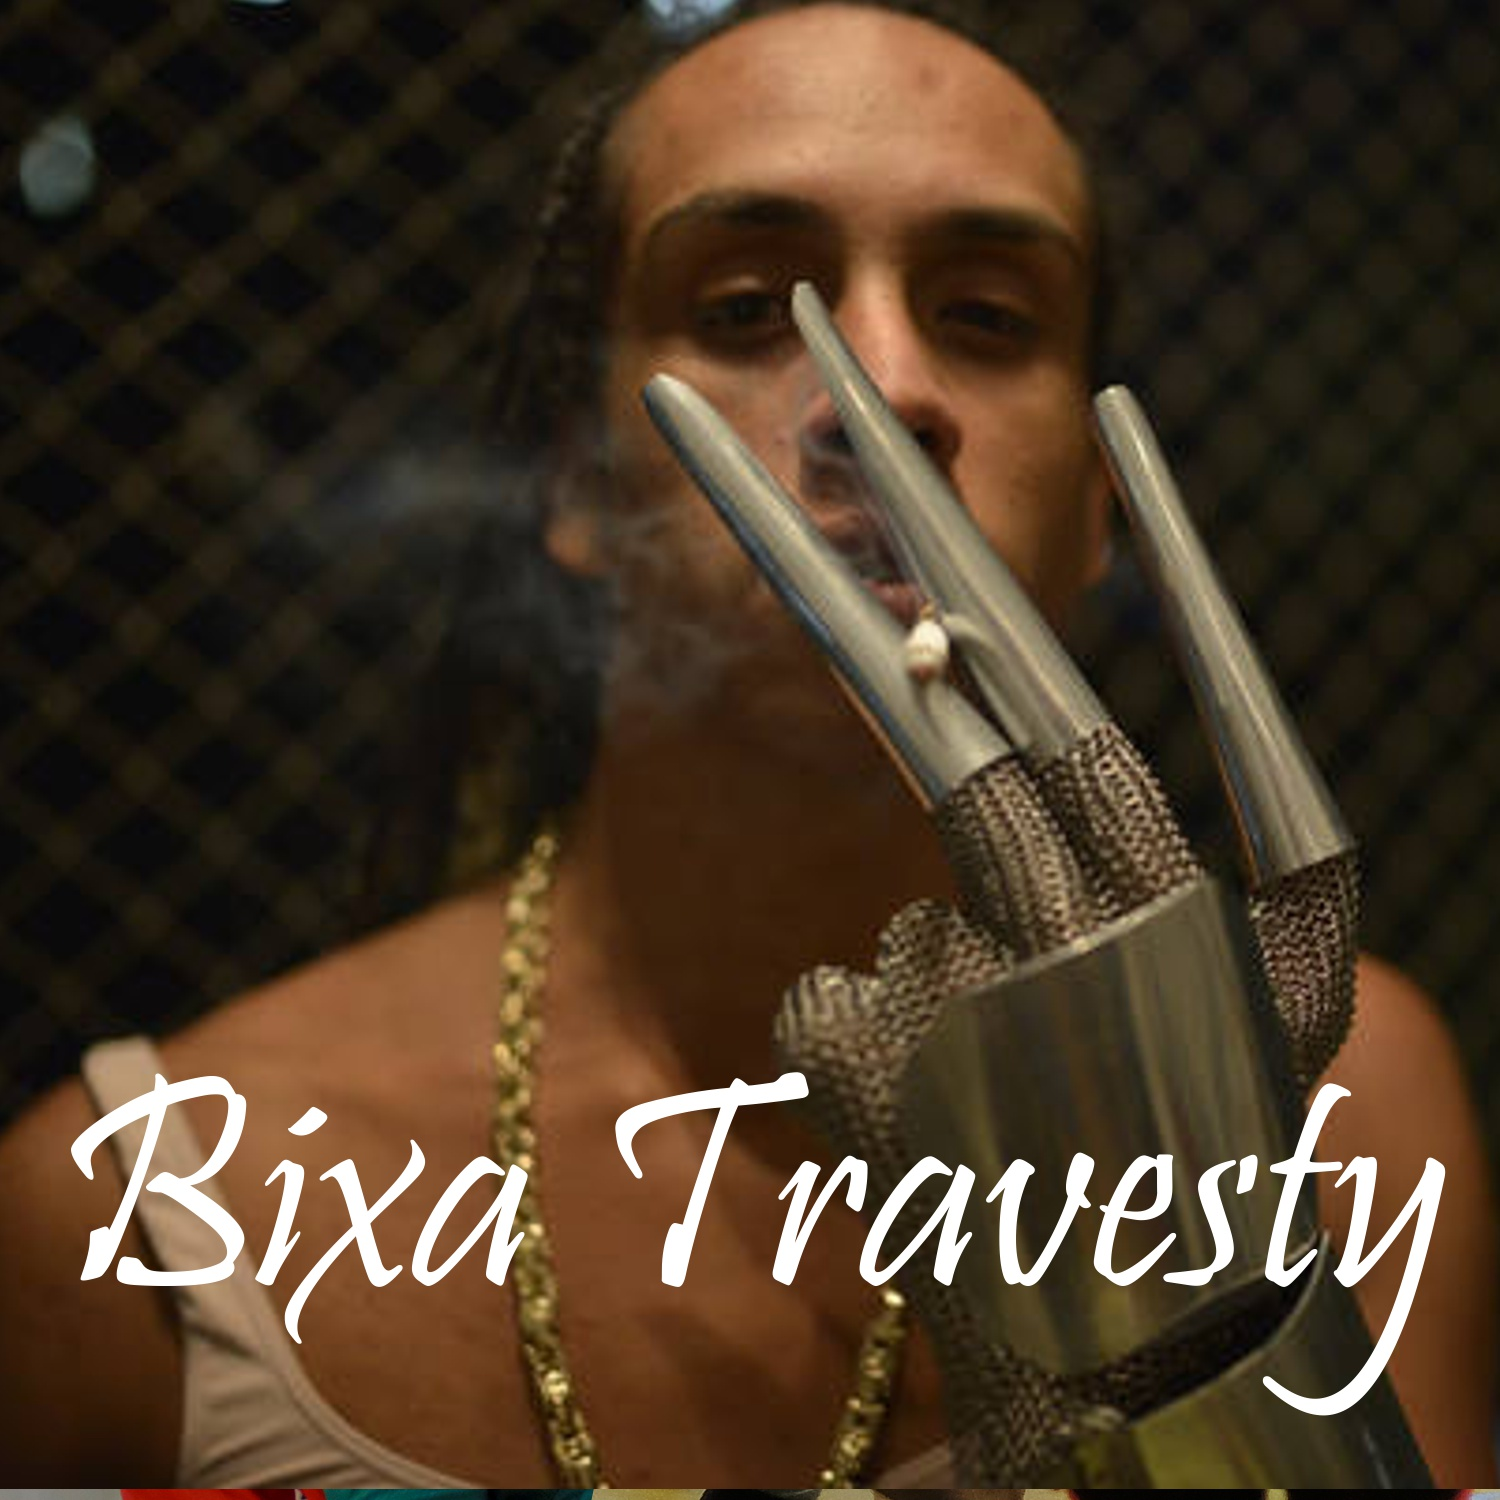 PORTUGAL: Hoje é dia de Bixa Travesty no Queer Porto